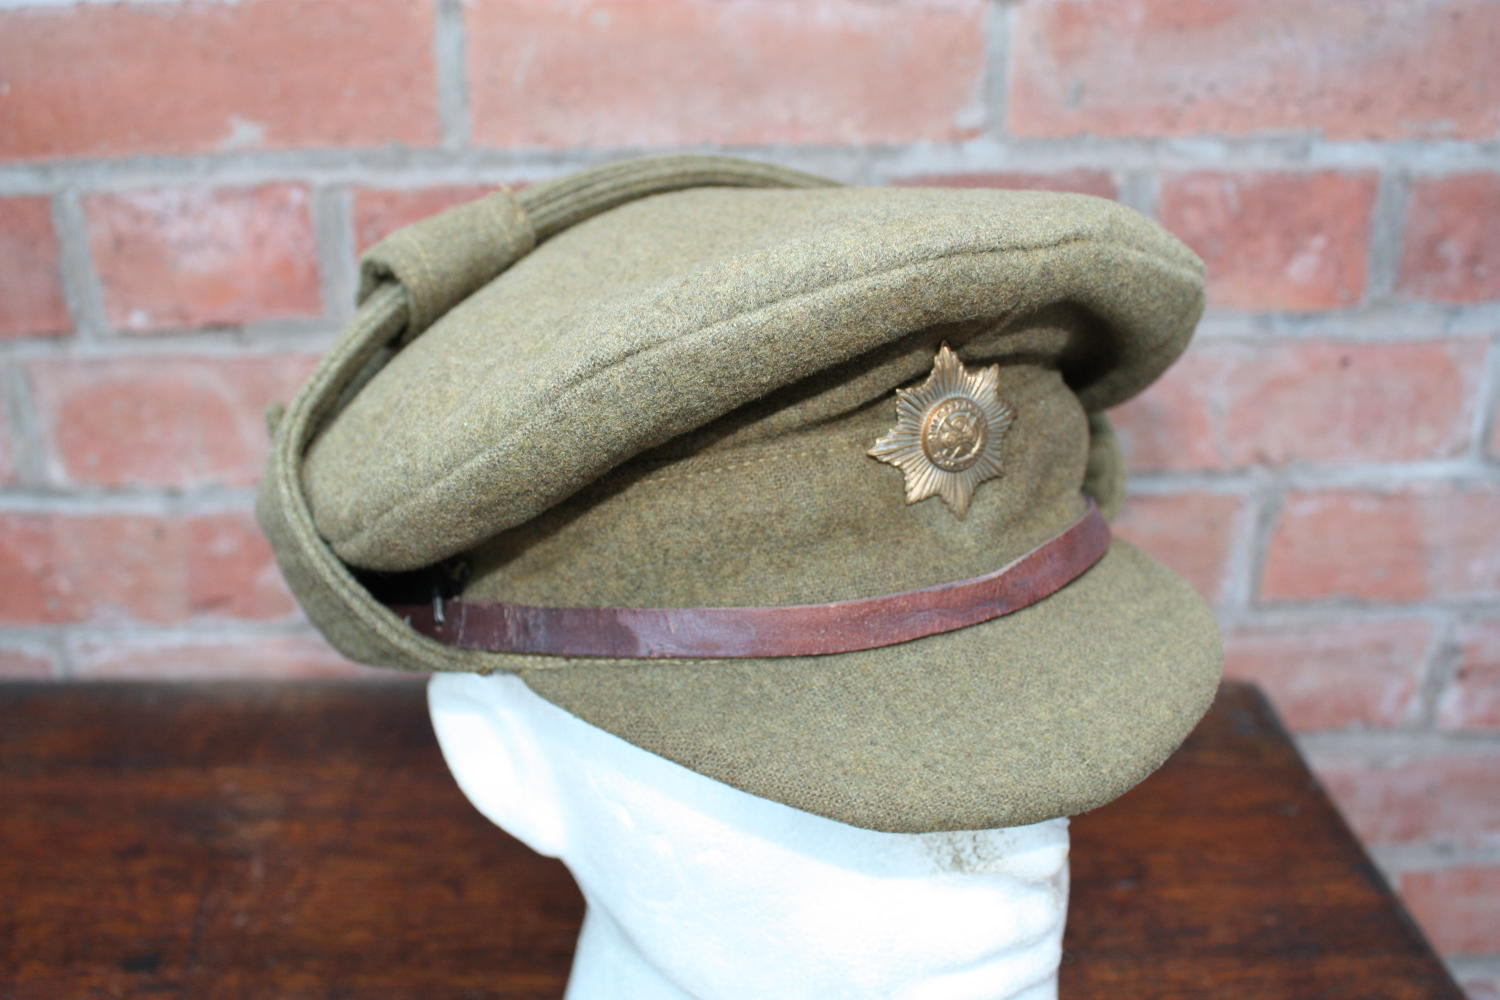 WW1 BRITISH OTHER RANKS 'COR BLIMEY' TRENCH CAP